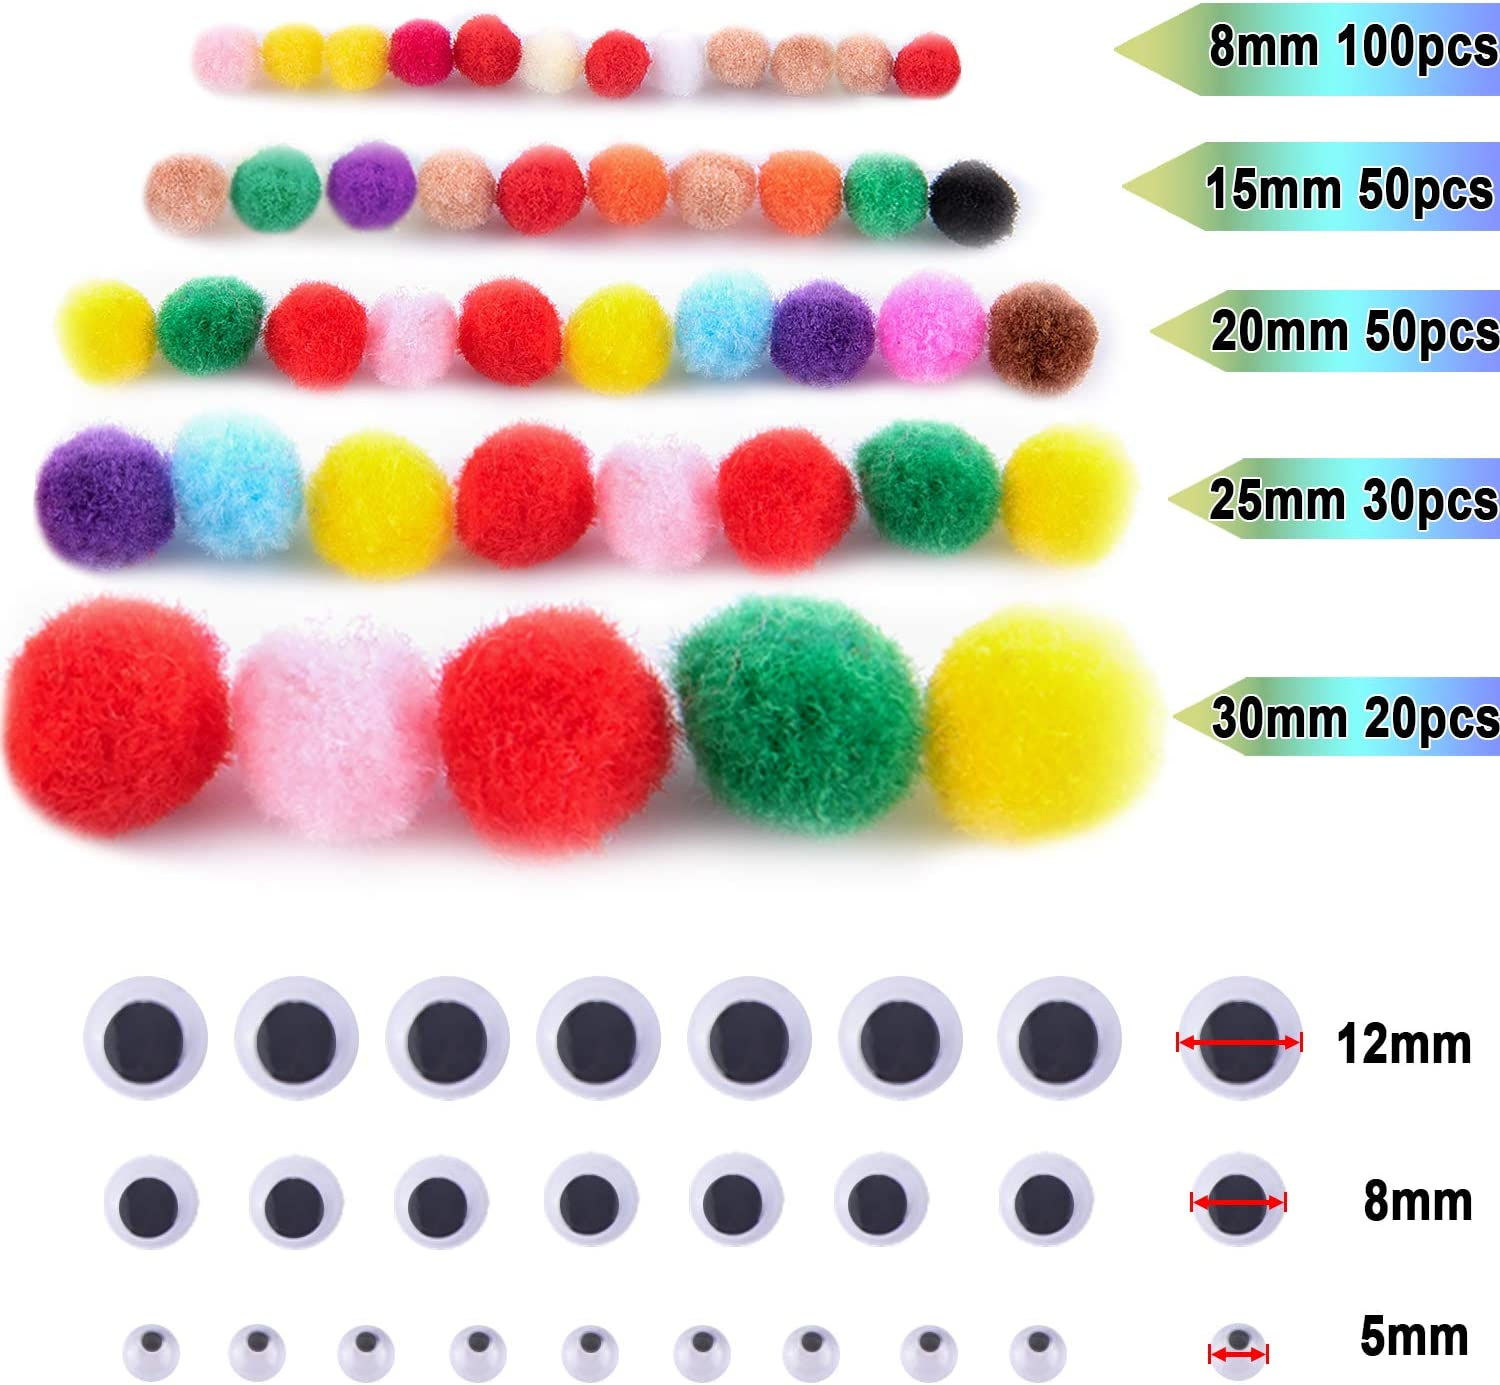 BQTQ 800 Pcs Pipe Cleaner Craft Supplies Set Including 350 Pcs Pipe Cleaner Chenille Stems 250 Pcs Pom Poms 200 Pcs Self Adhesive Wiggle Eyes for DIY Crafts Party Decoration Arts Projects